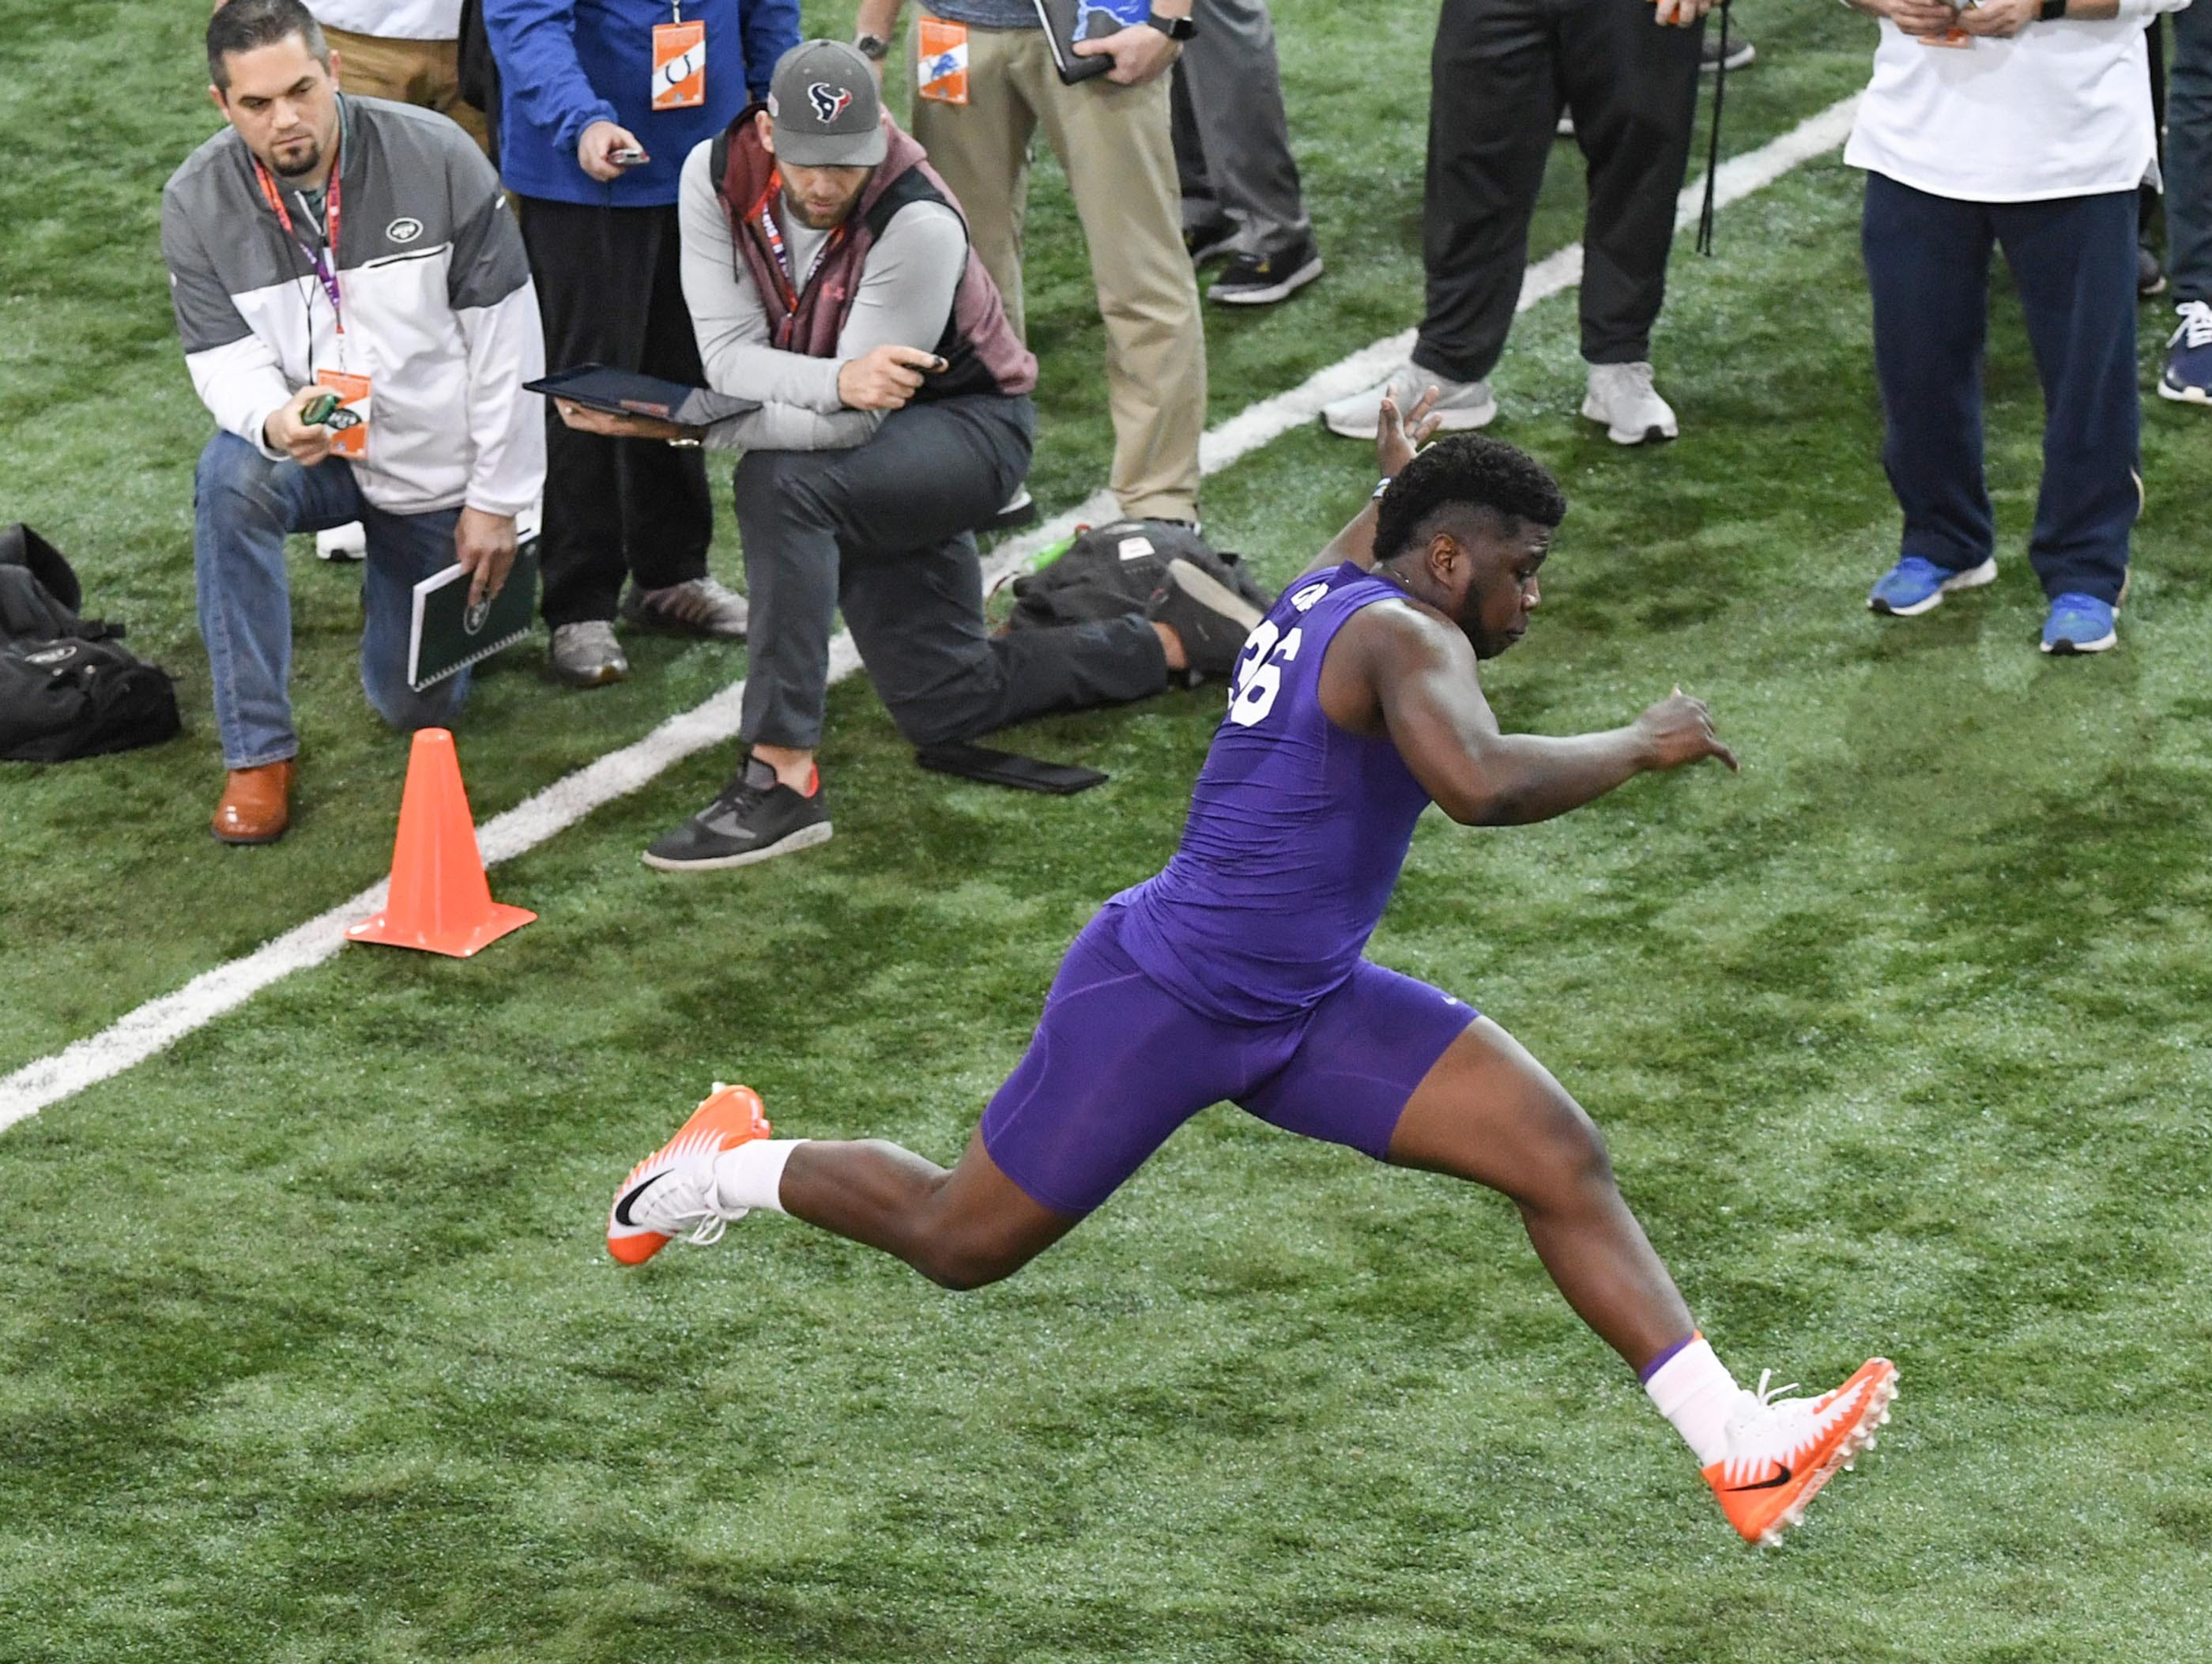 Linebacker Judah Davis runs during Clemson pro day at the Poe Indoor Facility in Clemson Thursday, March 14, 2019.